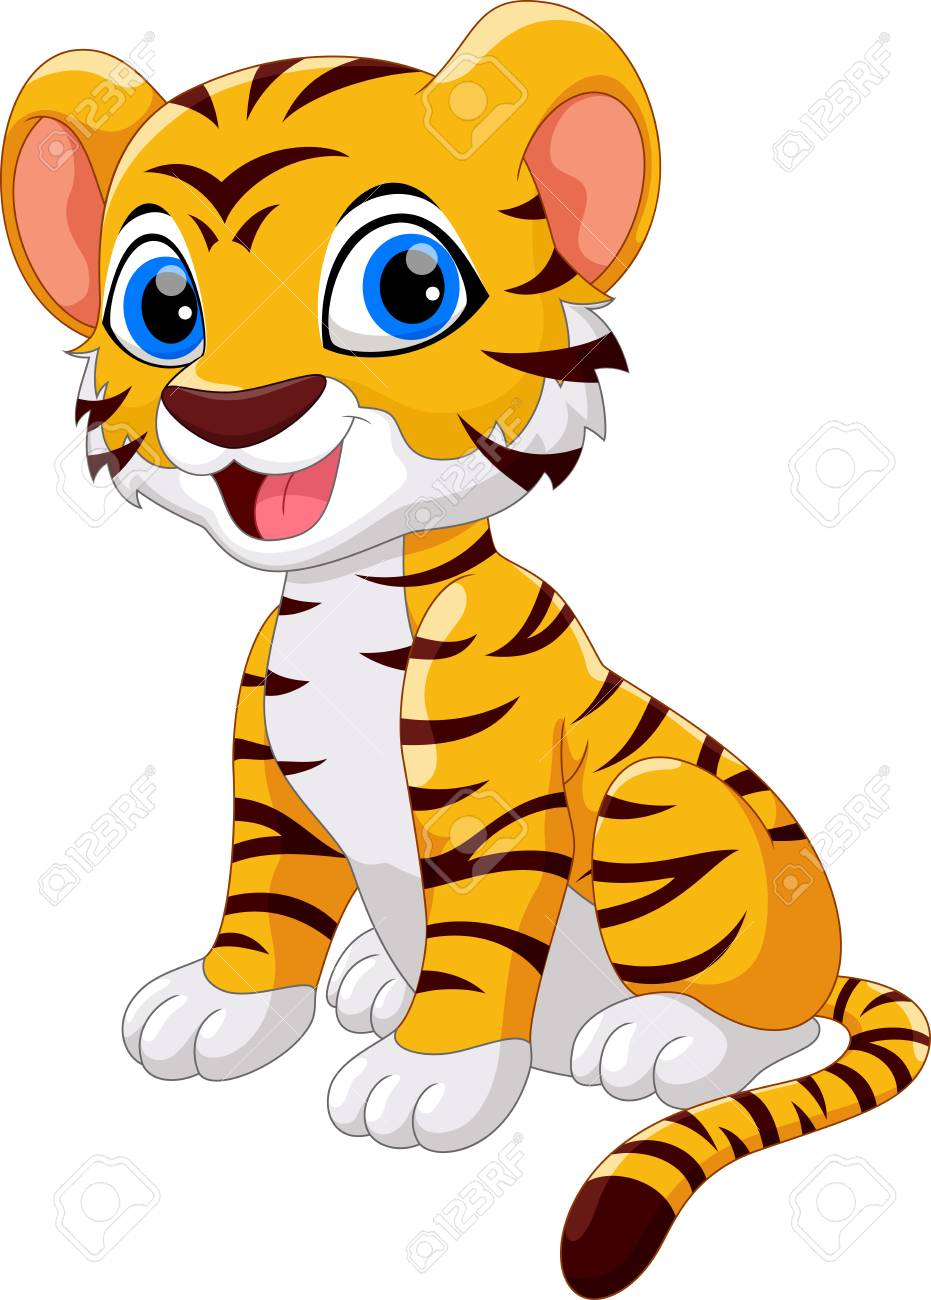 Cute Tiger Cartoon Isolated On White Background Royalty Free Cliparts Vectors And Stock Illustration Image 94897249